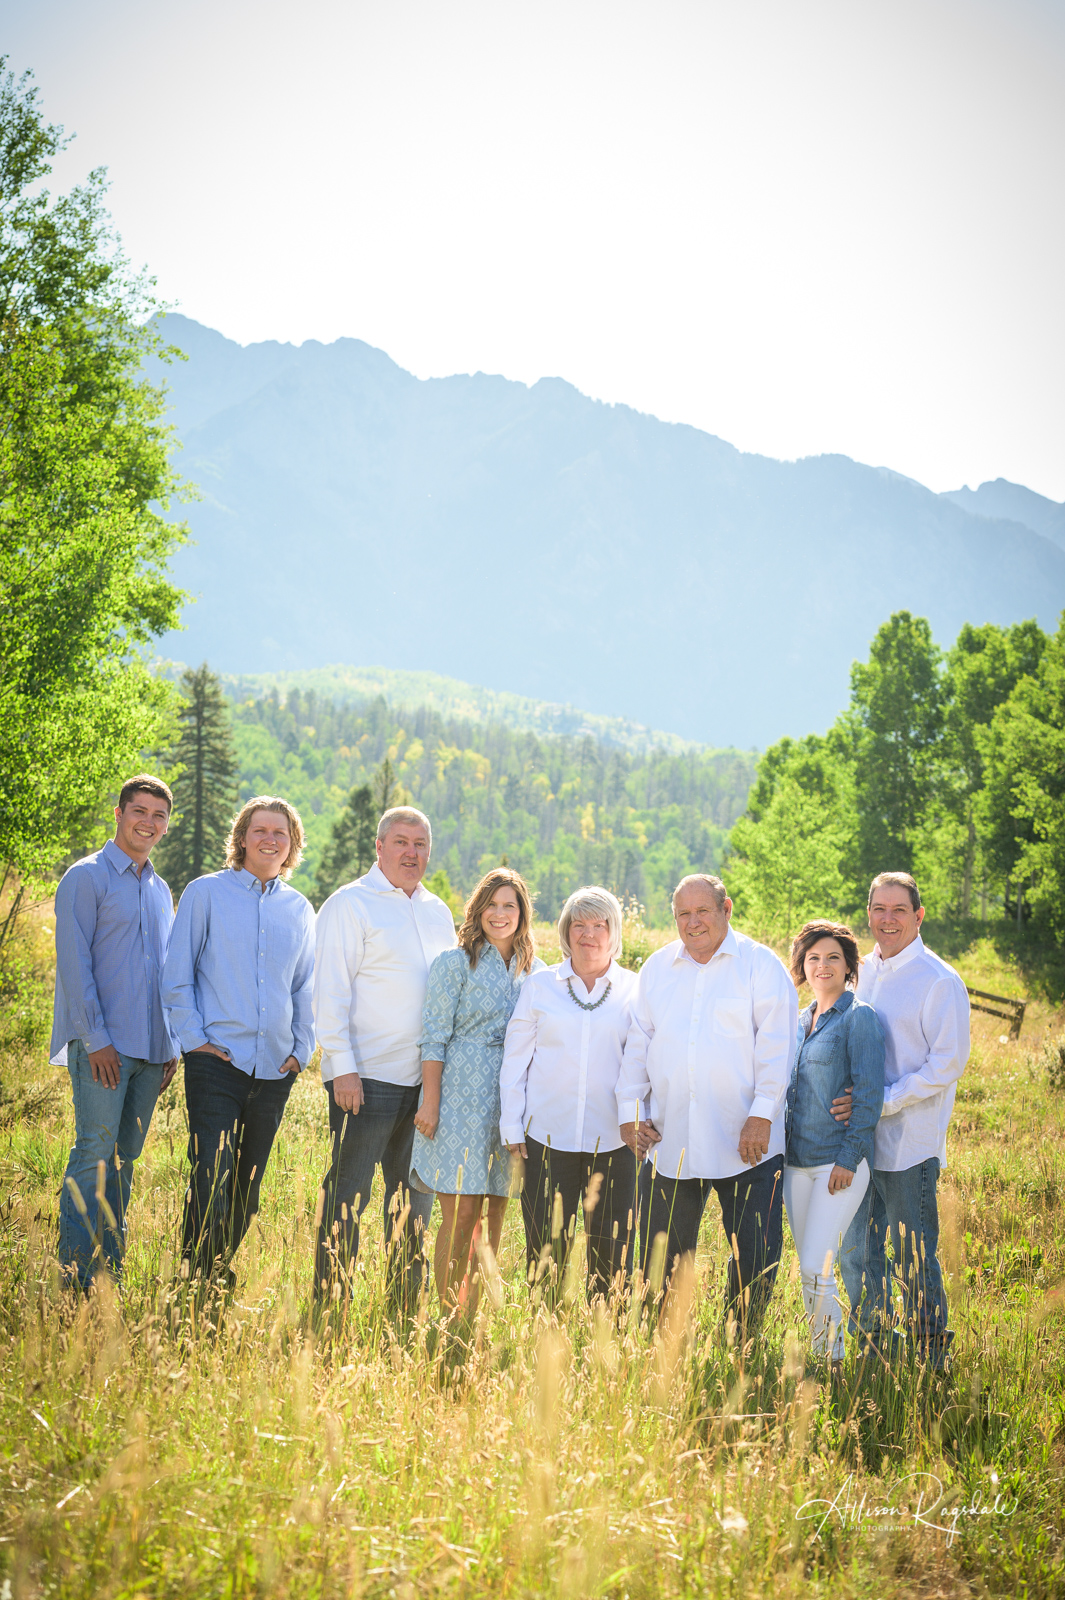 Gorgeous family pictures with long grass field